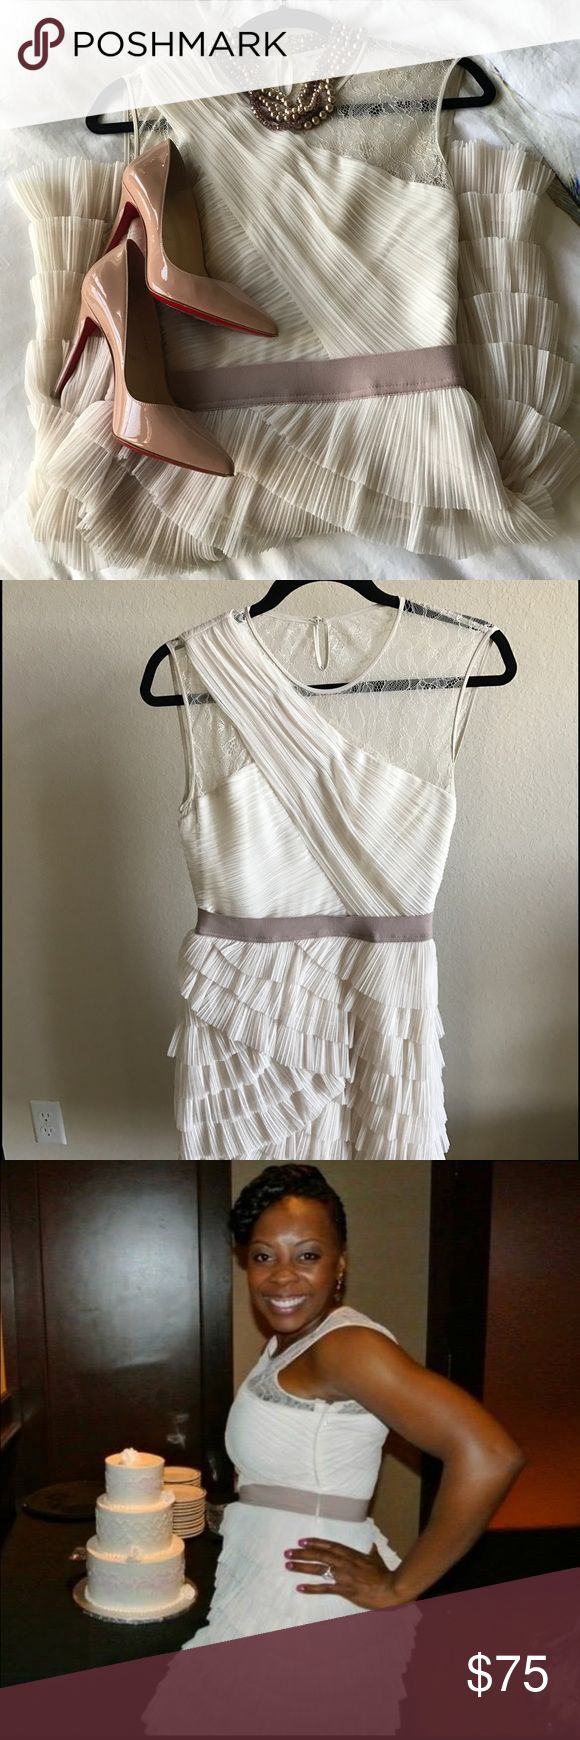 Cream cocktail dress Very cute cream/off white cocktail dress. Perfect for any party. I only wore it once. It needs a new home 😊 please make me an offer. It's a size 8 but it runs small I'm usually a 4-6. Make me an offer!!!!! BCBG Dresses Mini